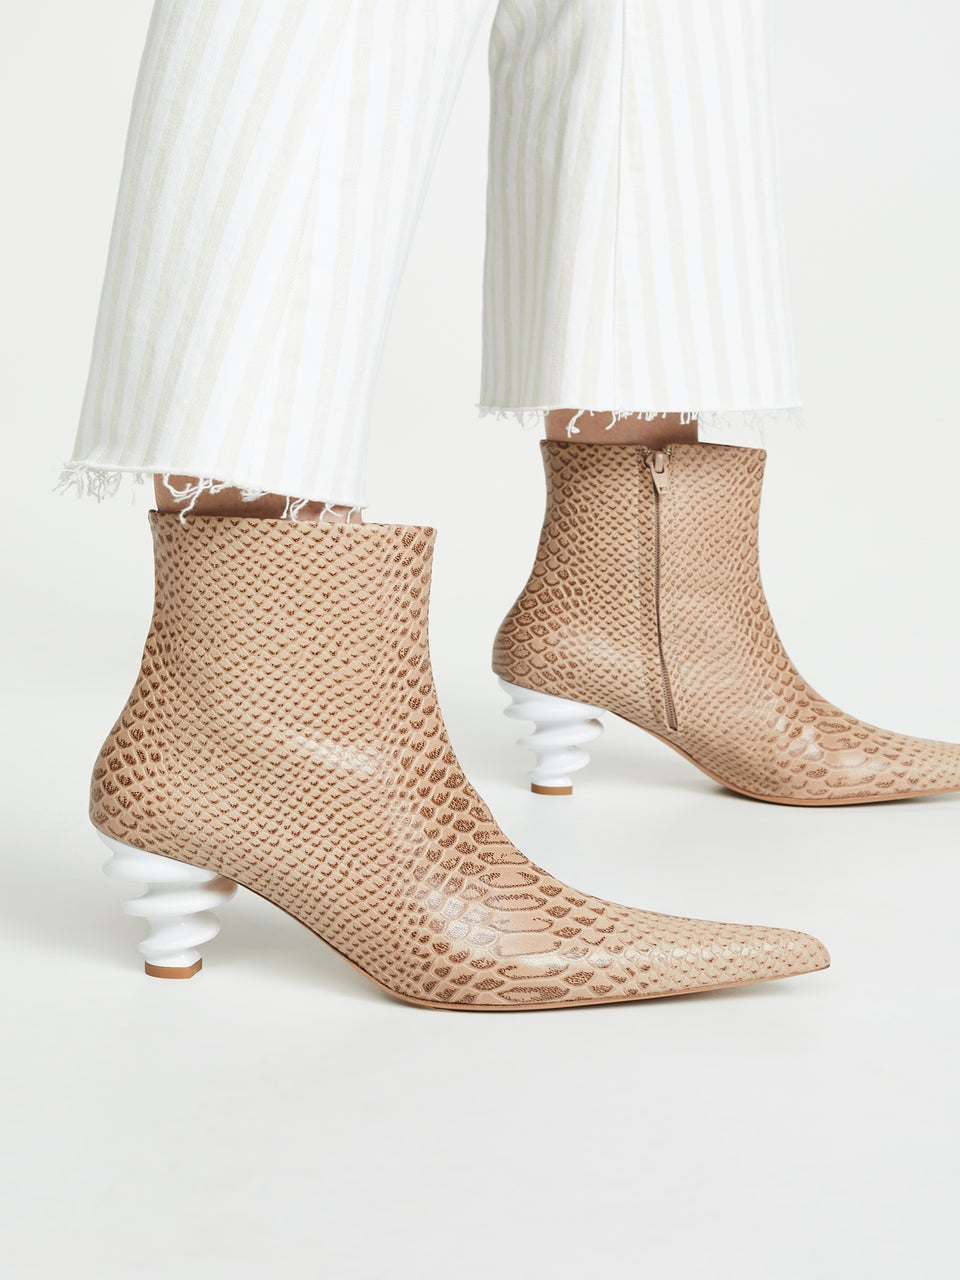 Shopbop's Designer Shoe Sale Is What We've All Been Waiting For